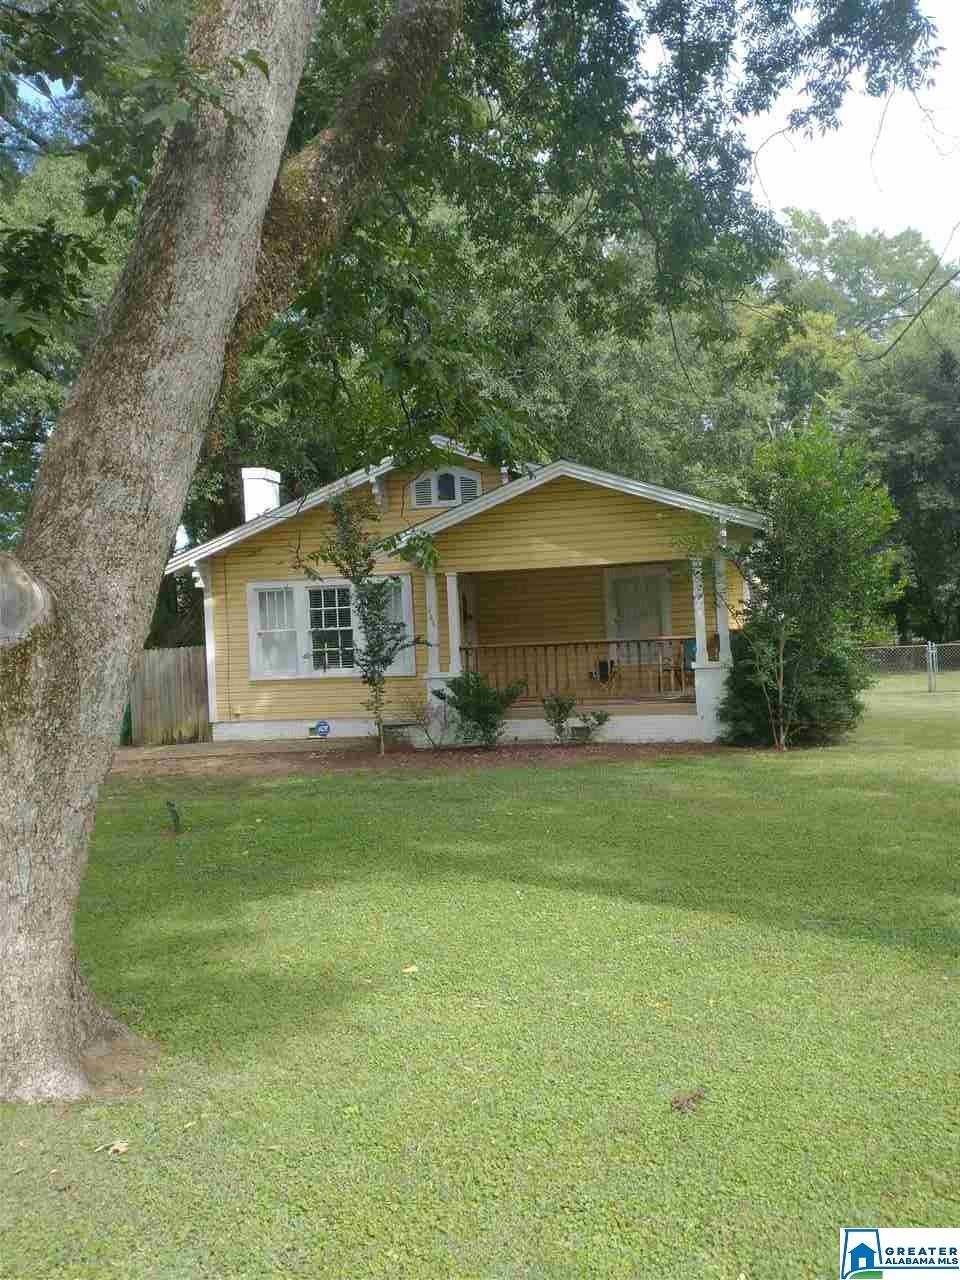 306 S NORTON AVE, Sylacauga, AL 35150 - MLS#: 896512